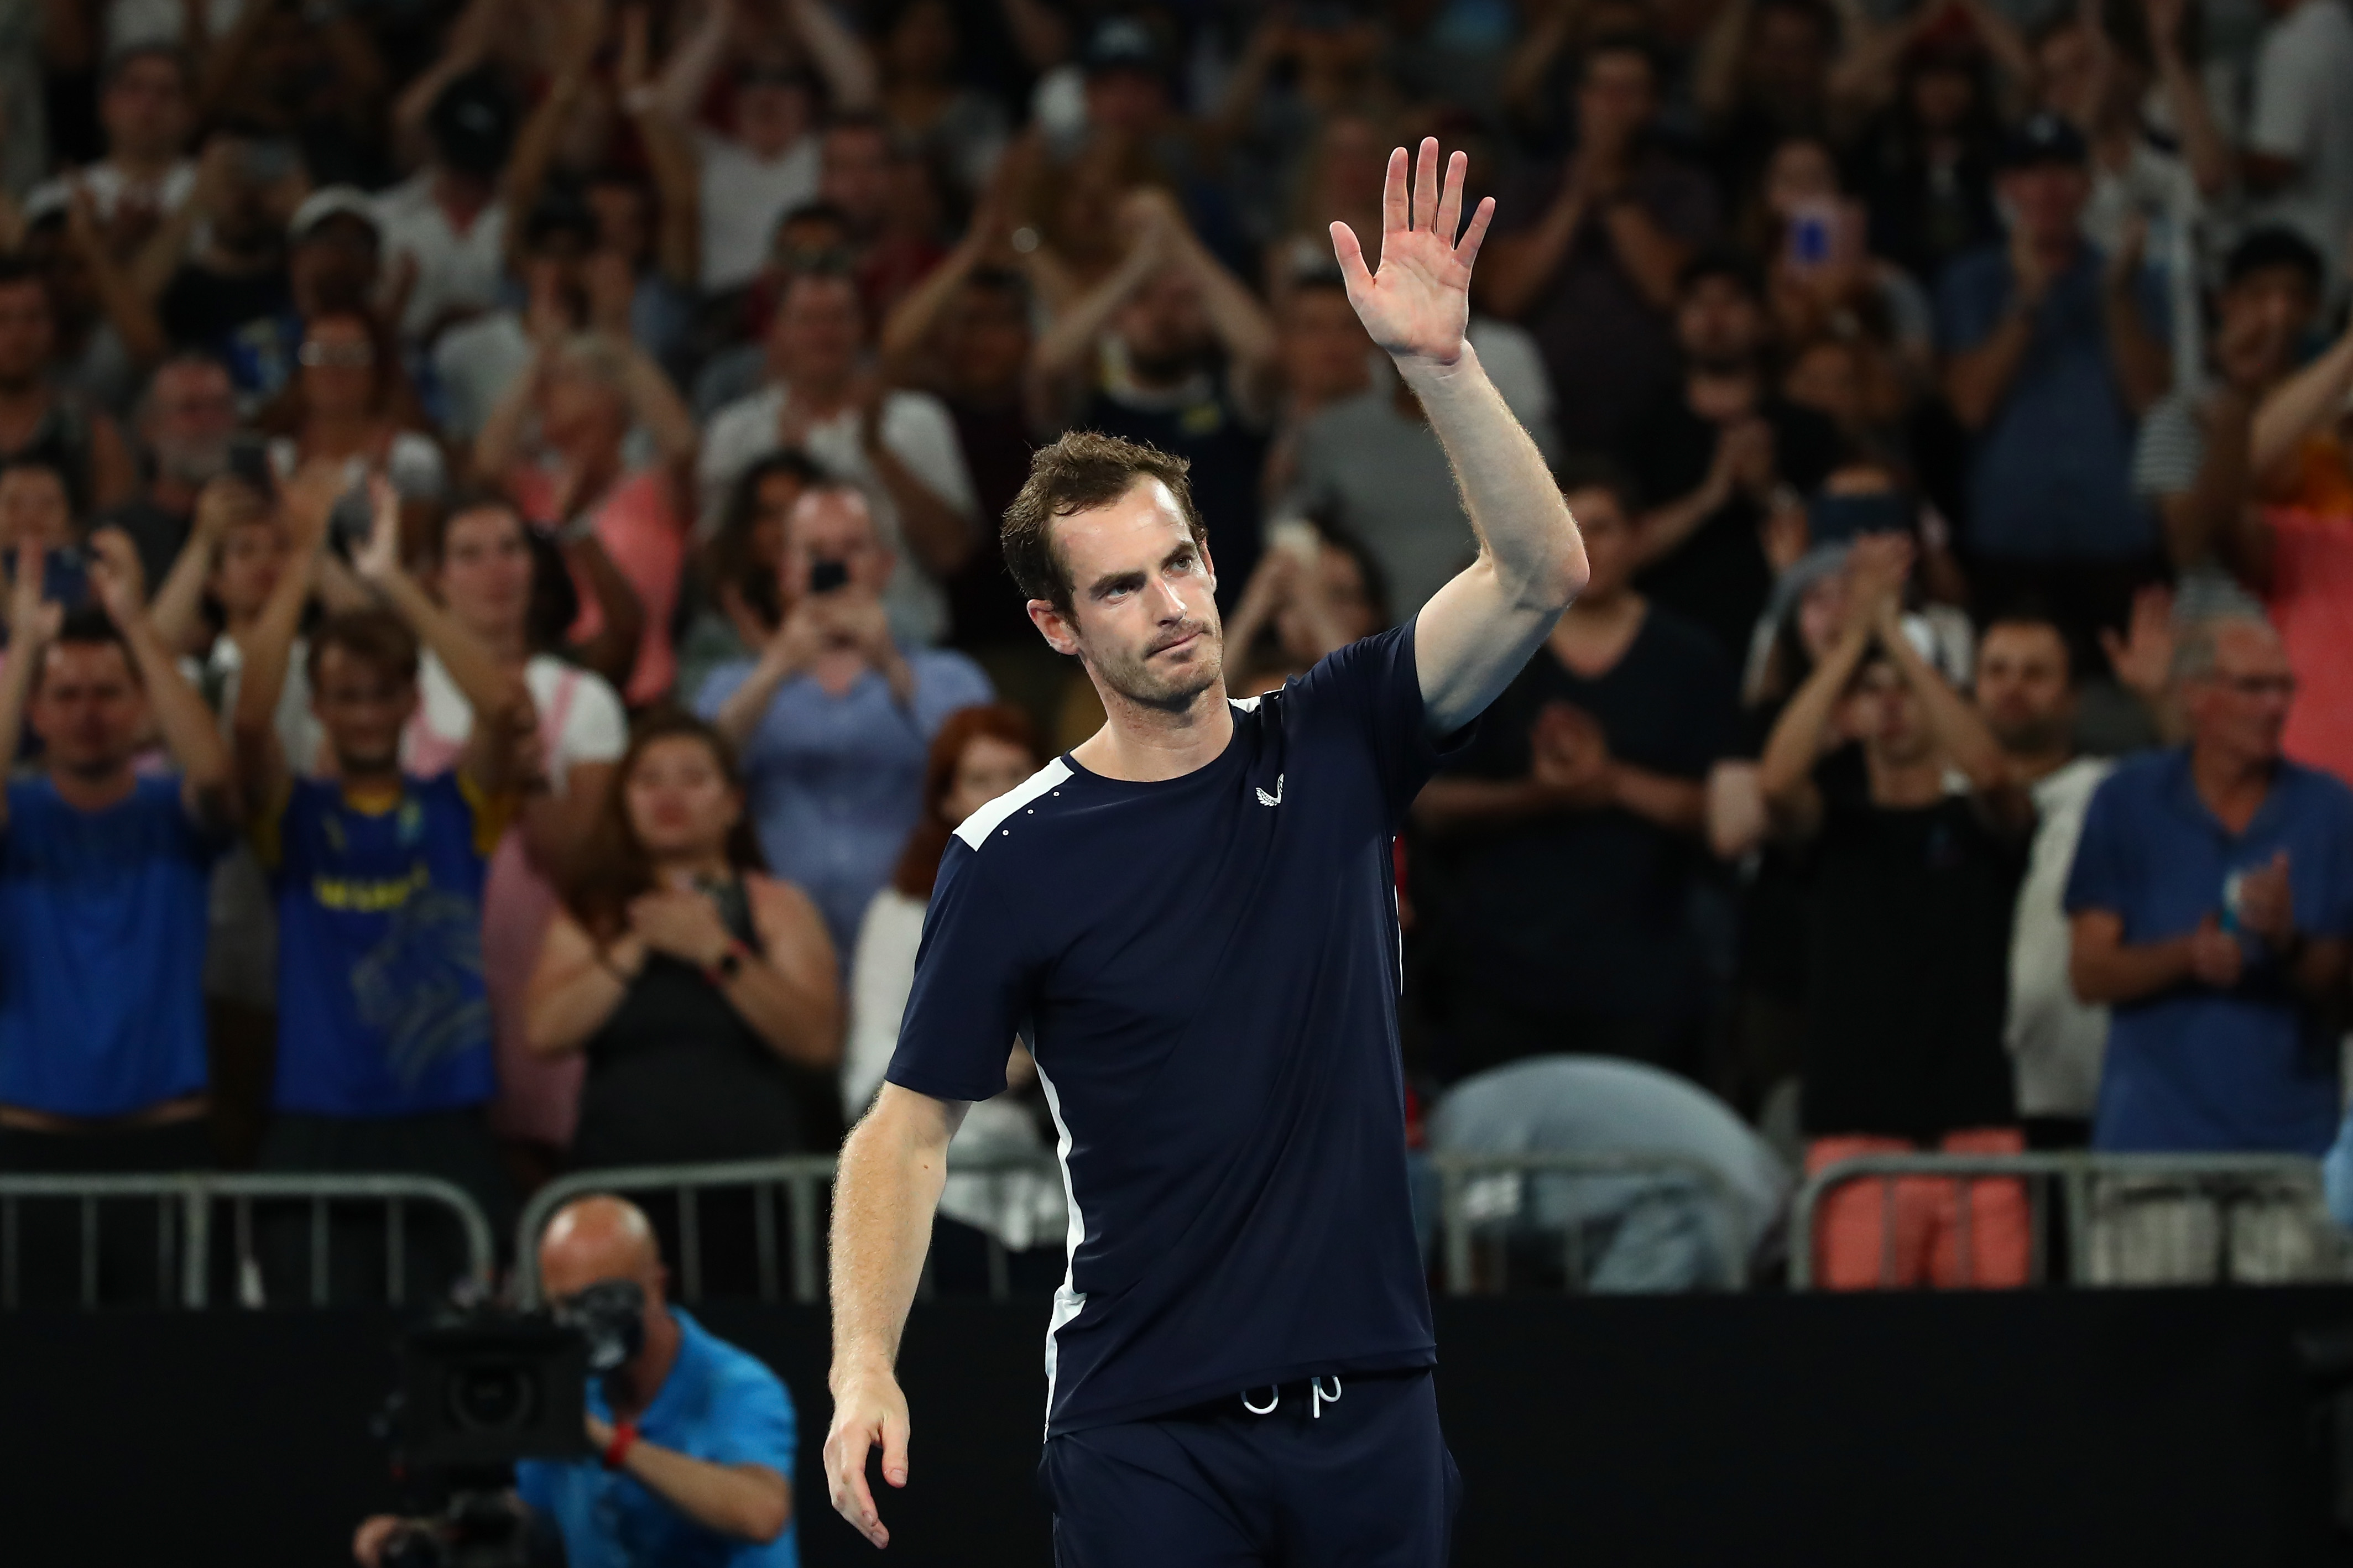 Andy Murray thanks the crowd after losing his first round match against Roberto Bautista Agut.